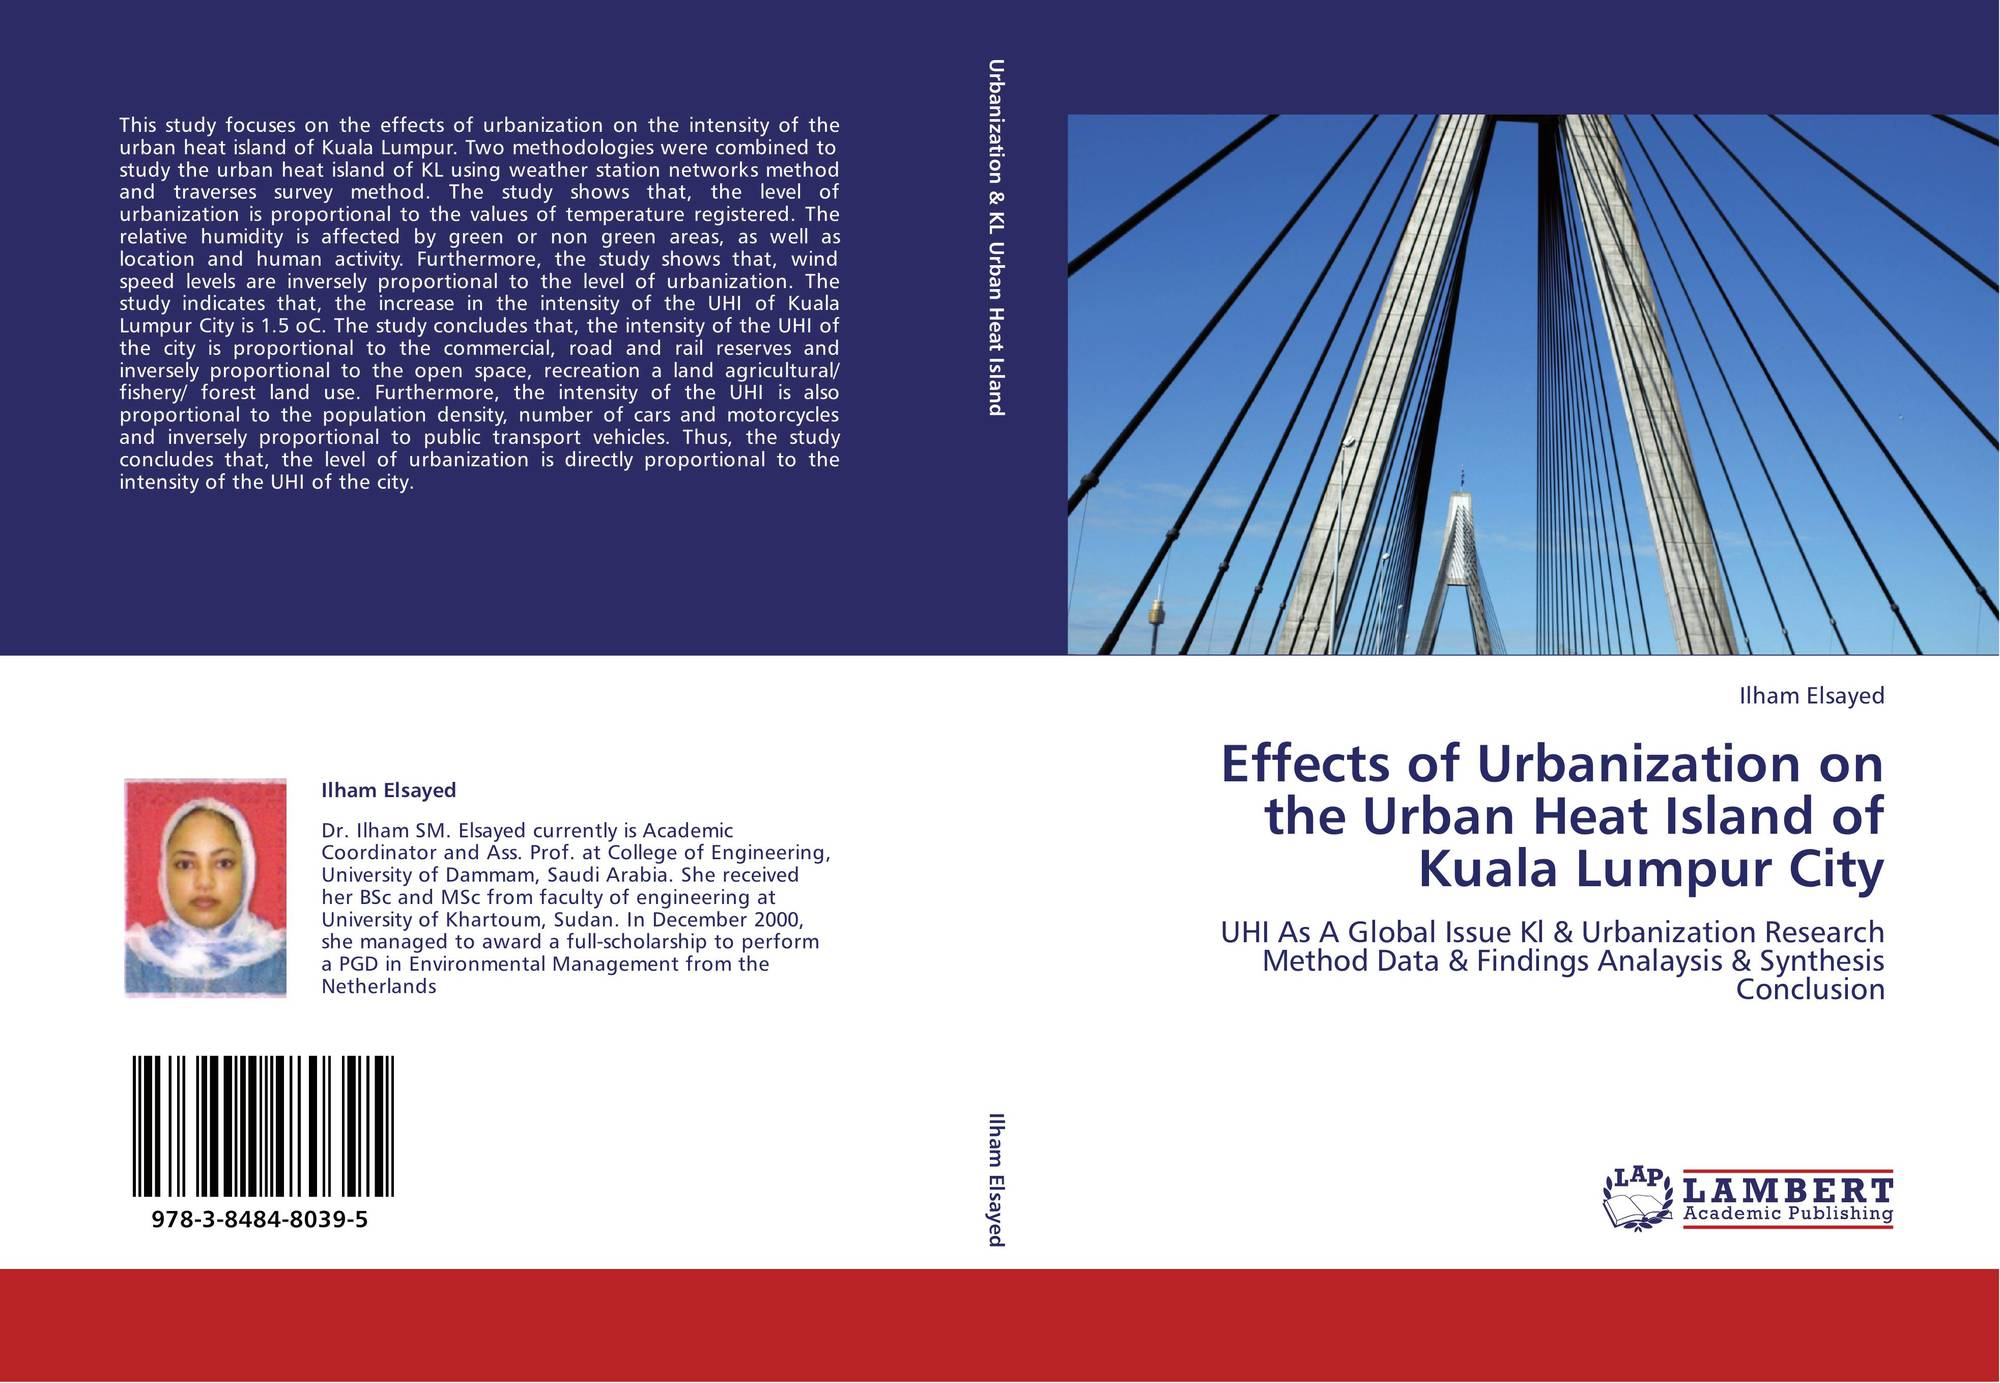 a synthetic approach to the urban heat island effect Keywords economic impact / urban heat island / urban planning i introduction   approach the economic cost of a thermal side effect of urbanization, the urban  heat  island is a purely synthetic phenomenon, and it acts as an unintended.